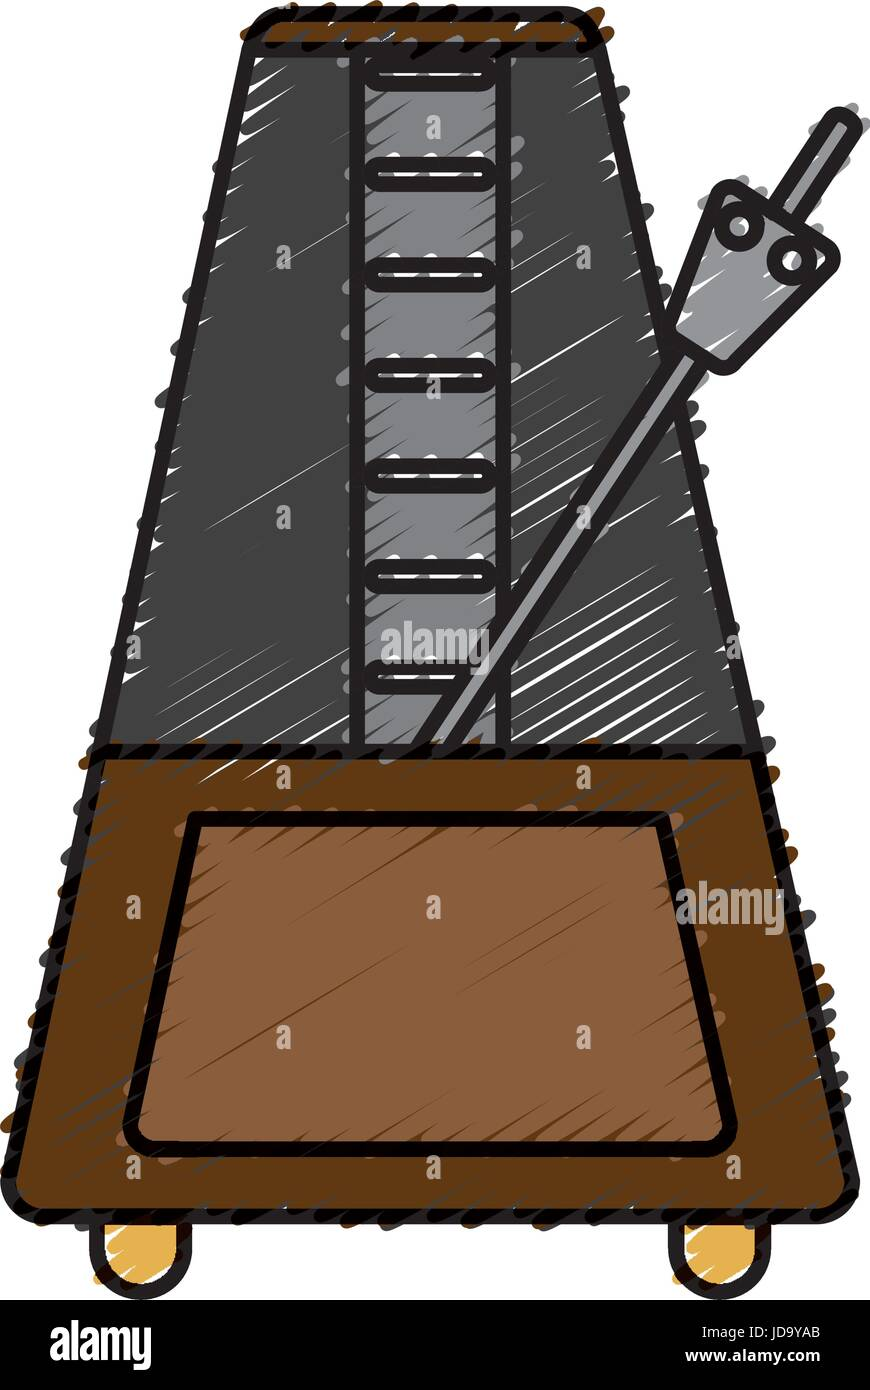 metronome icon over white background vector illustration - Stock Image